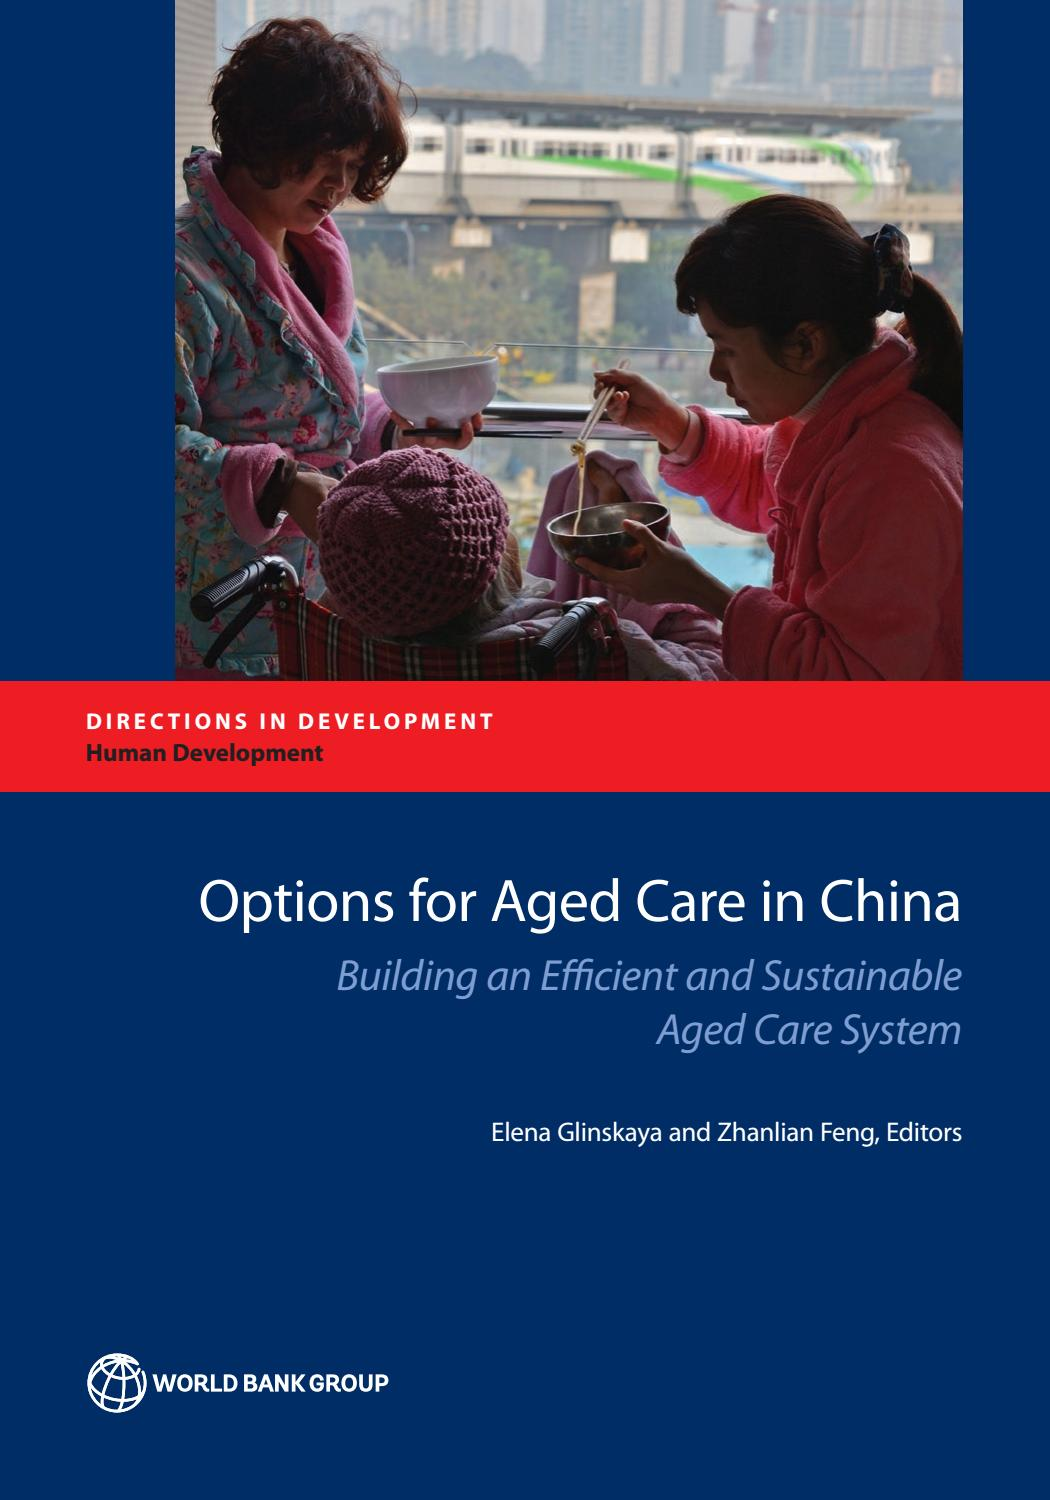 Options for Aged Care in China by World Bank Group